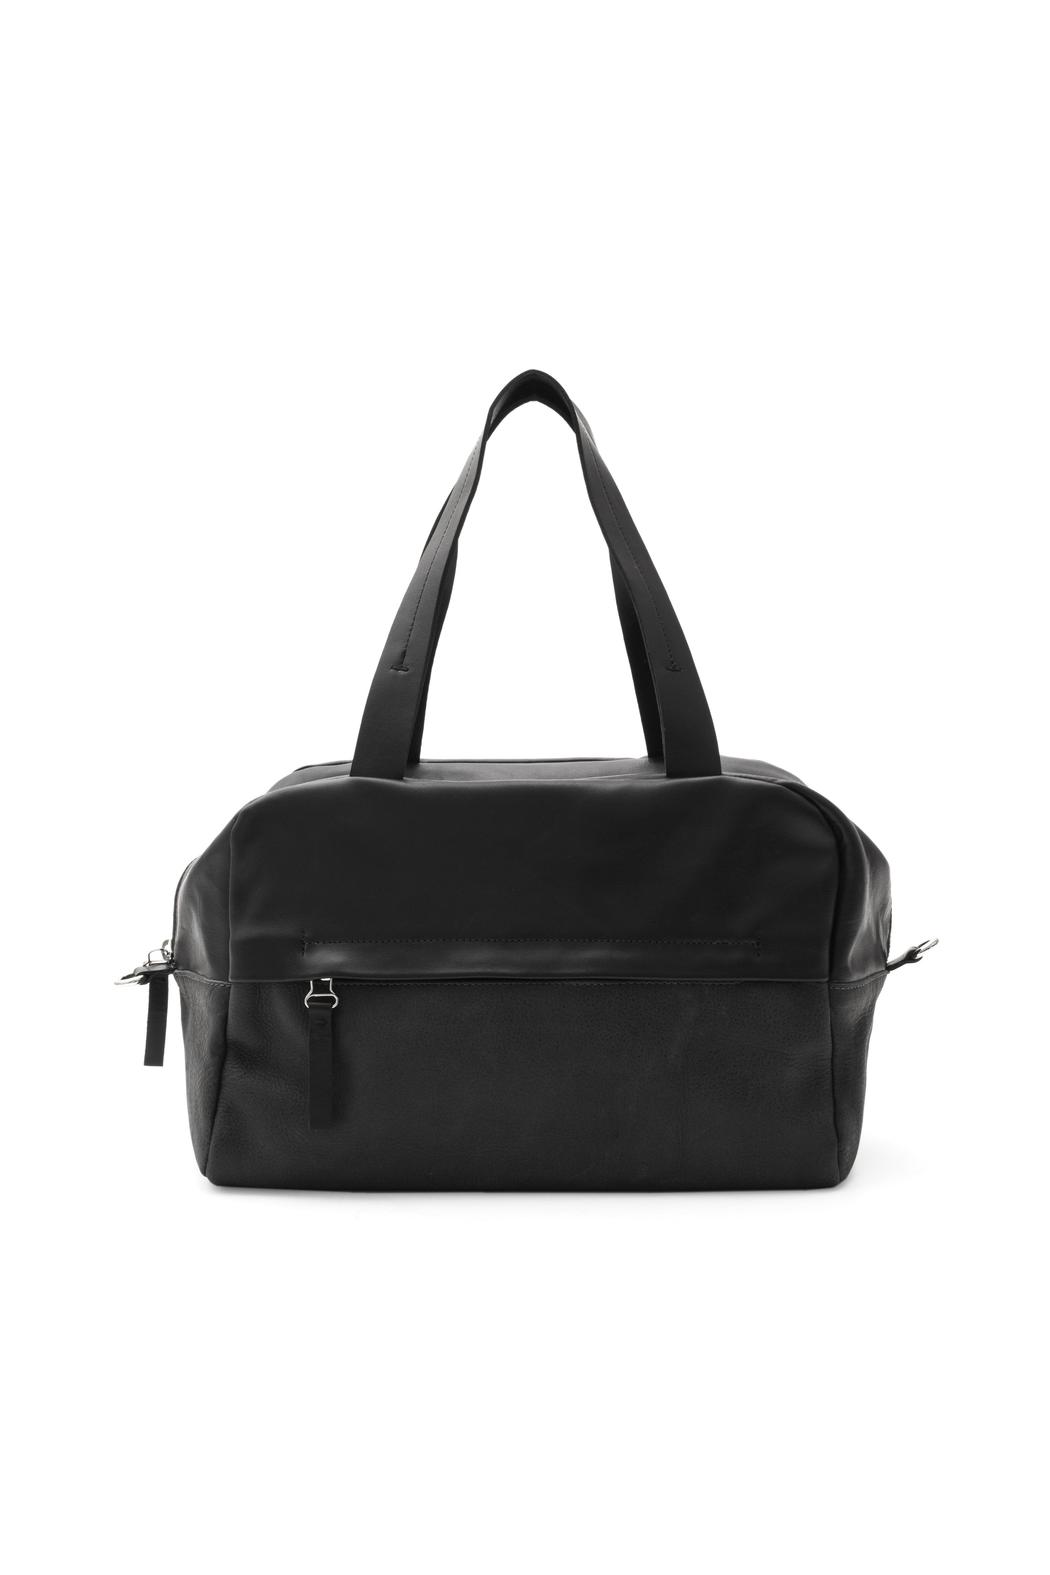 MEIRAV OHAYON Everyday Leather Tote - Main Image